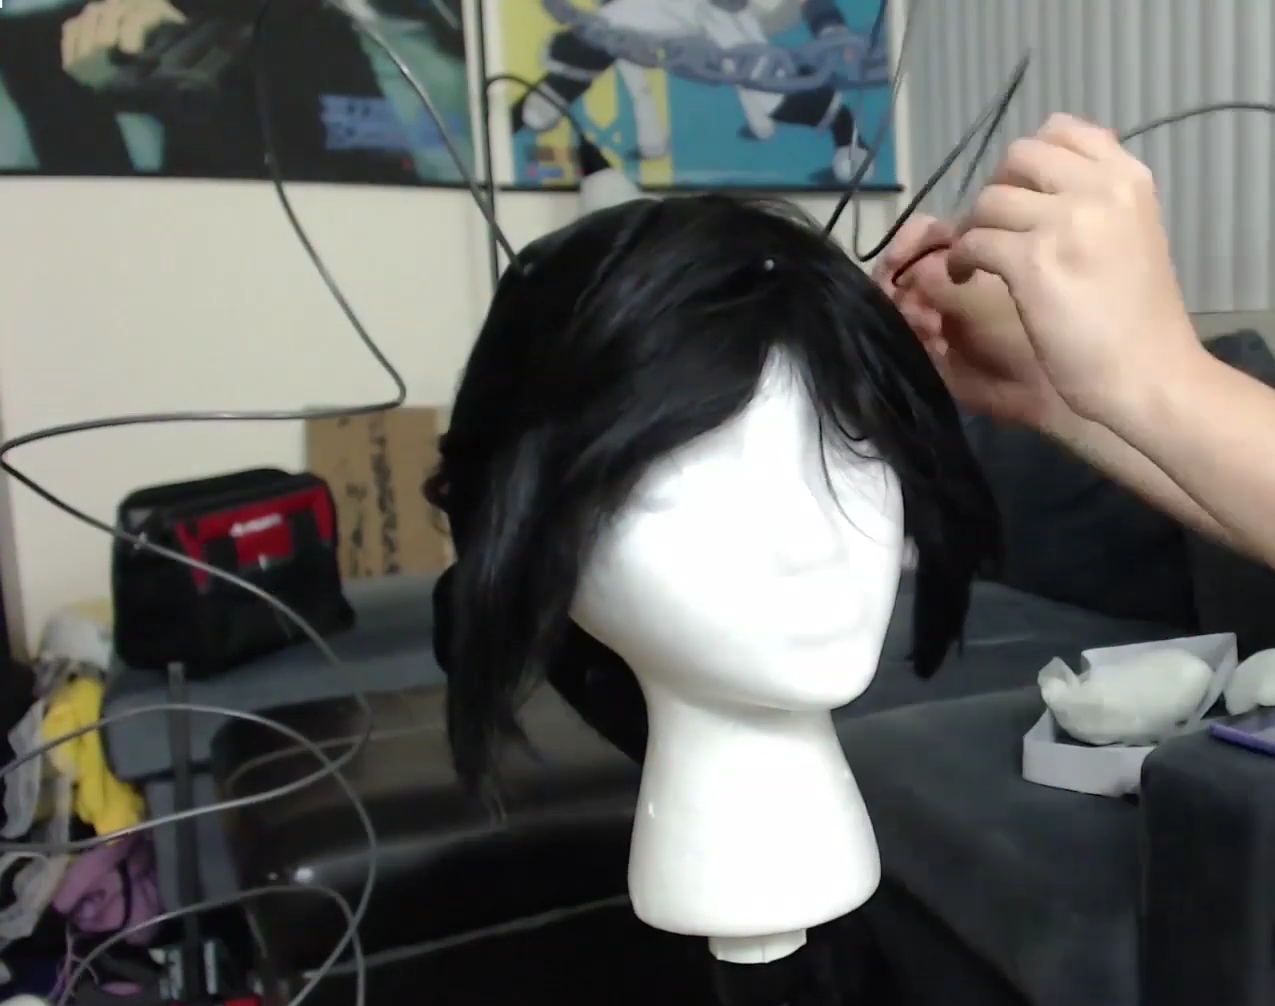 picture of base wig with wires coming out in curled shapes